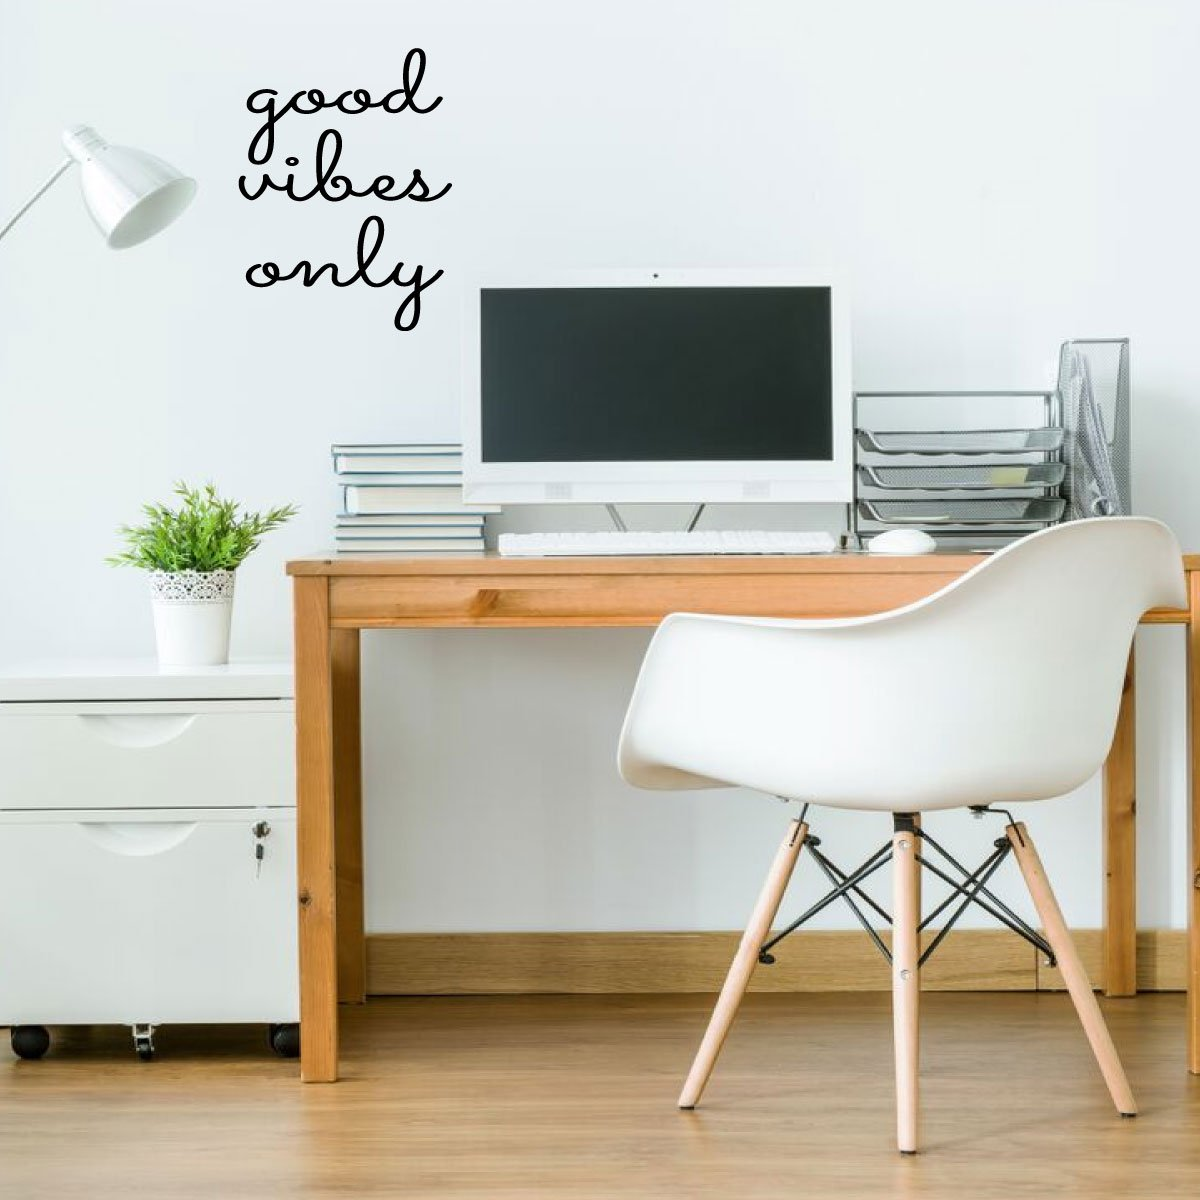 Good Vibes Only Wall Decal - Vinyl Decor Lettering for Work Office, School Classroom, Living Room, Bedroom, Playroom at Home